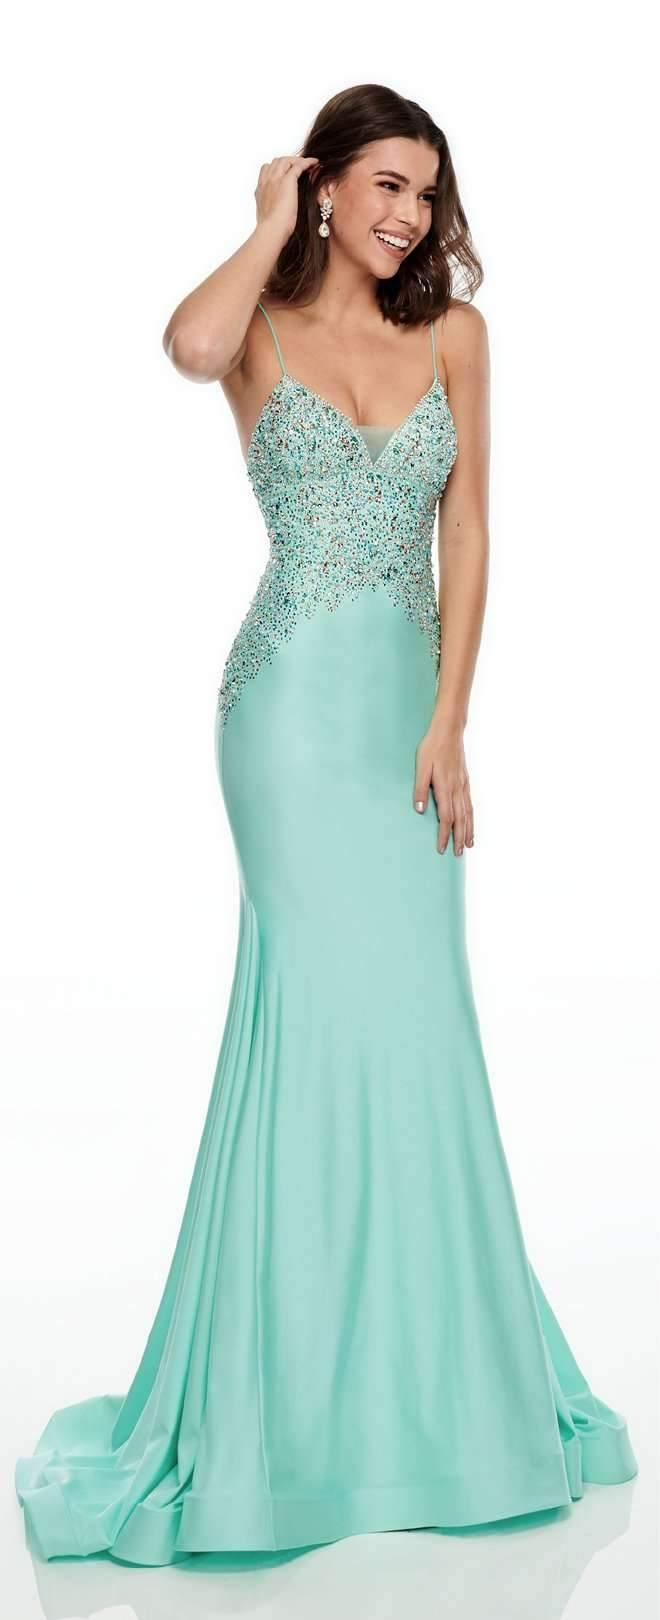 Rachel Allen - DANI - prom - Adore Bridal and Occasion Wear